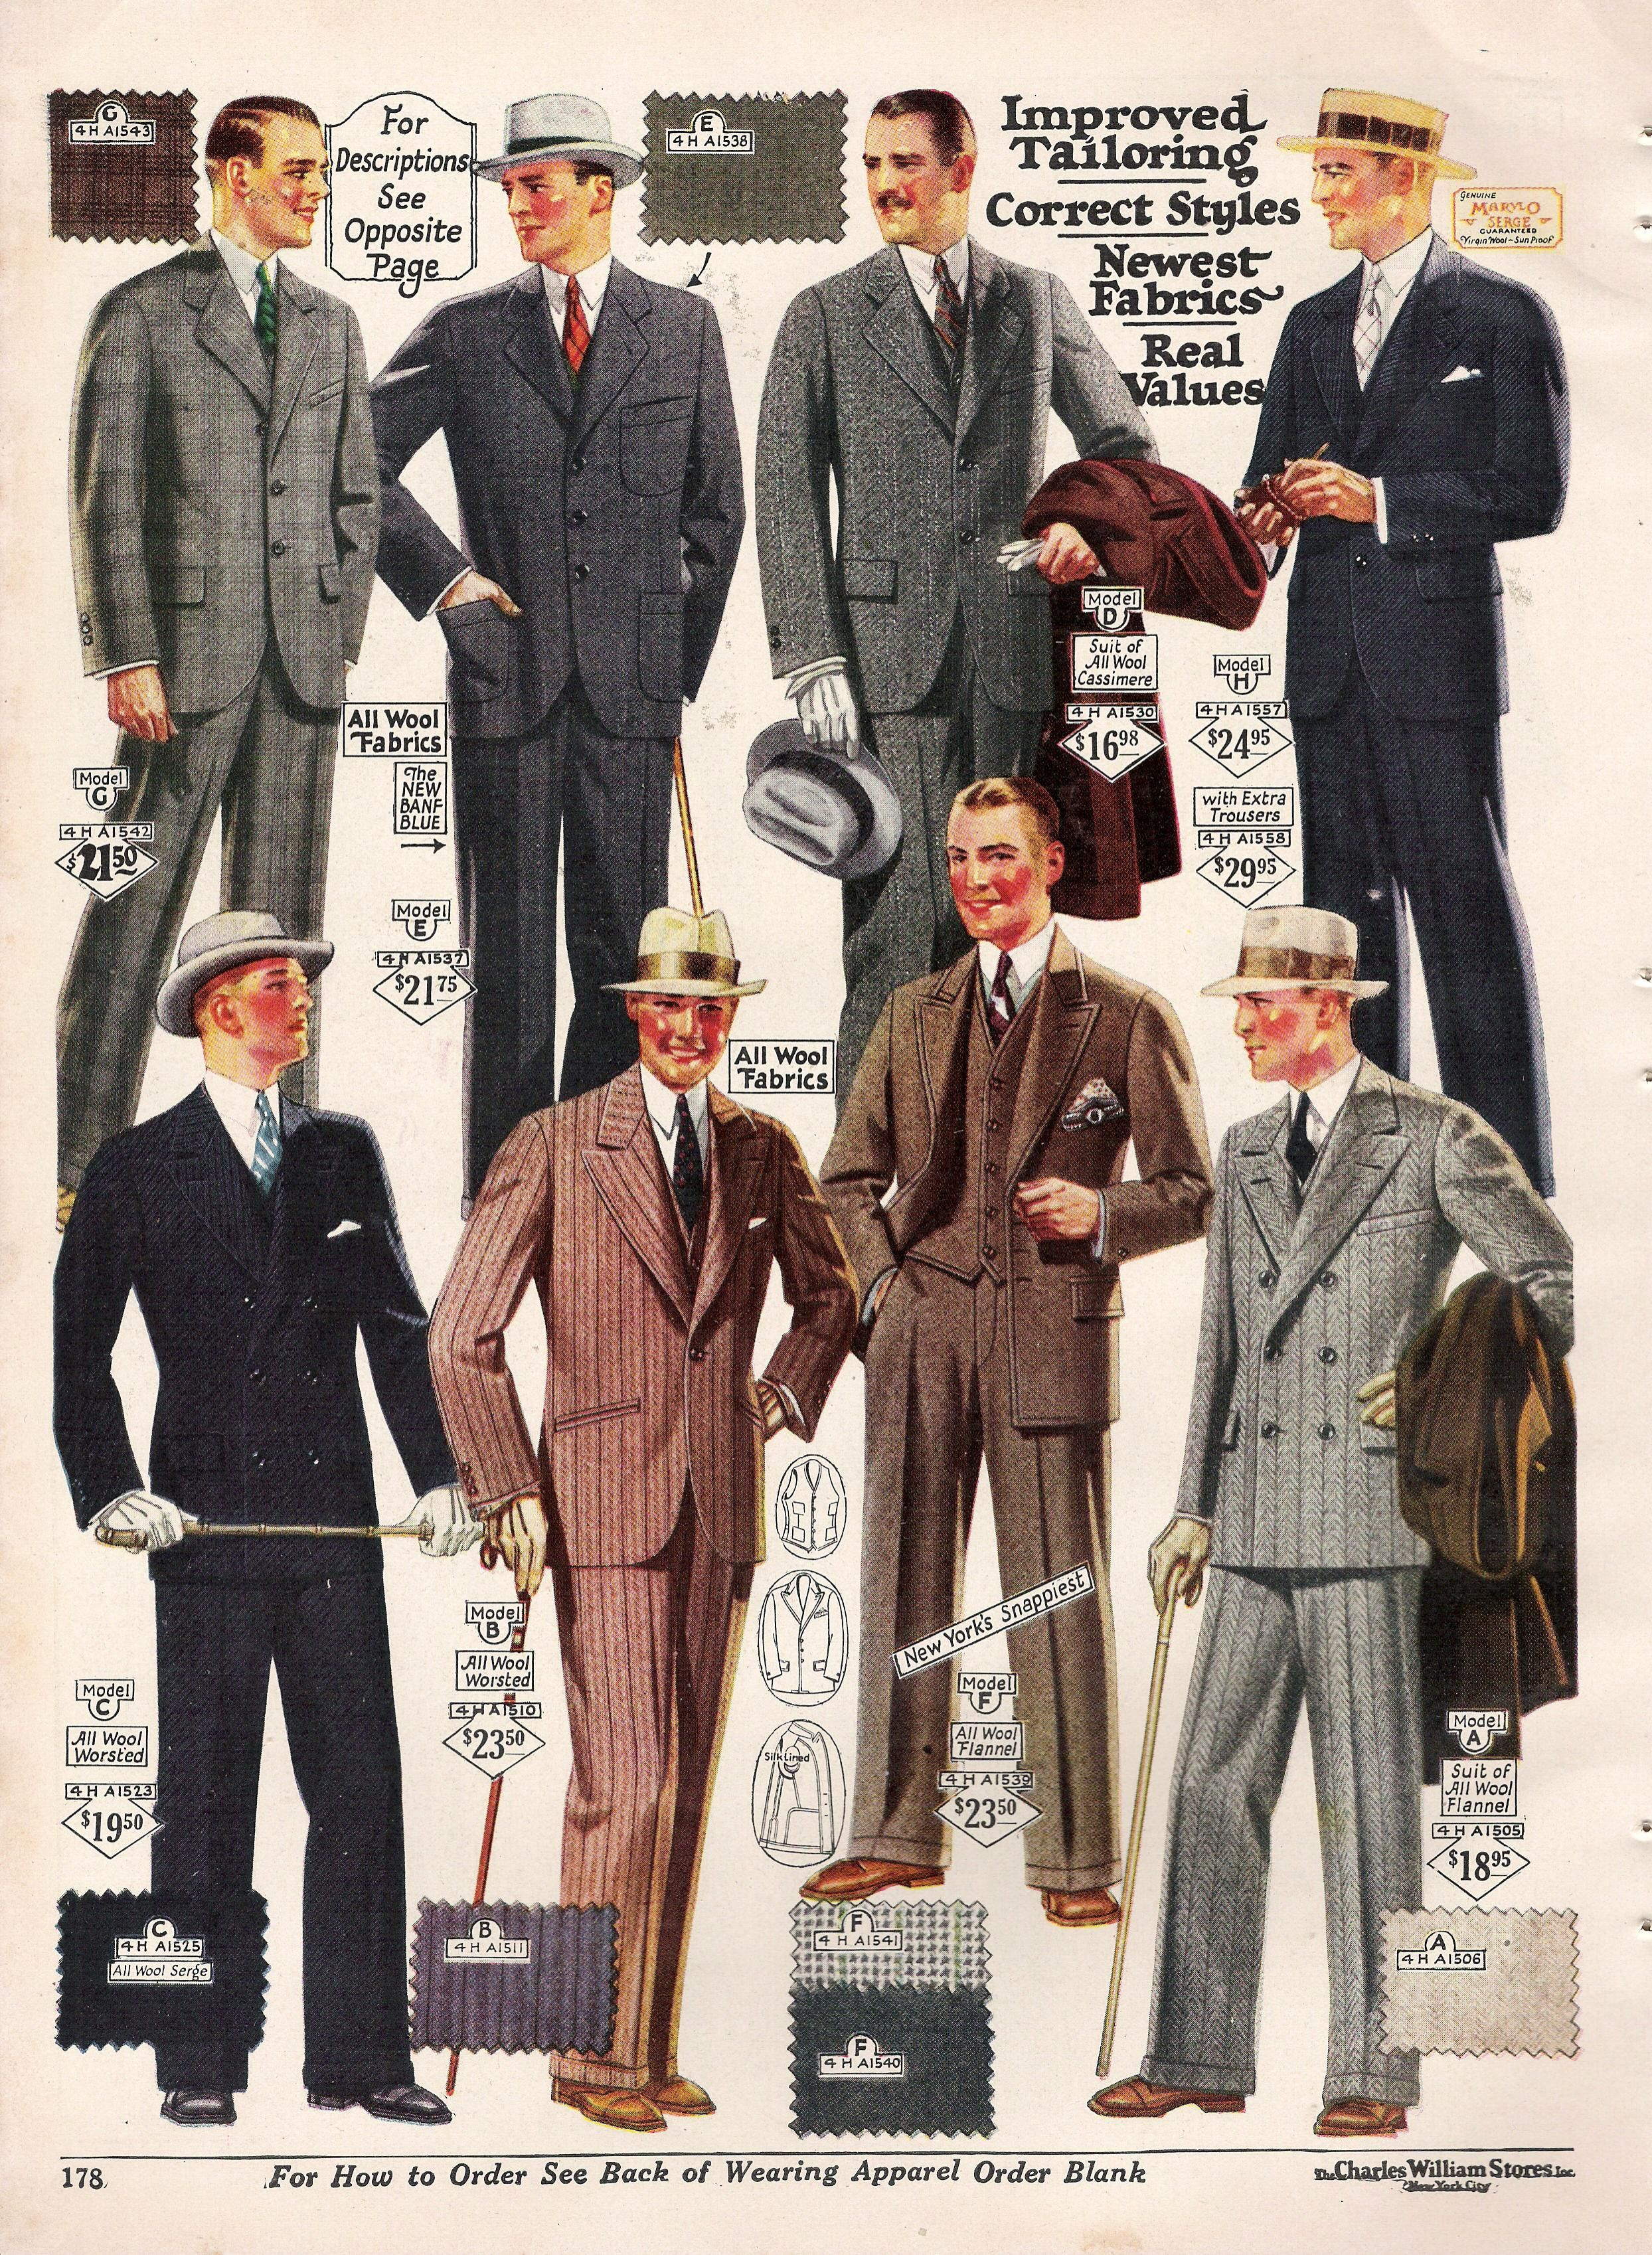 Fashion 1910 to 1920 - 1920s Fashion For Men Suits Hats Shoes